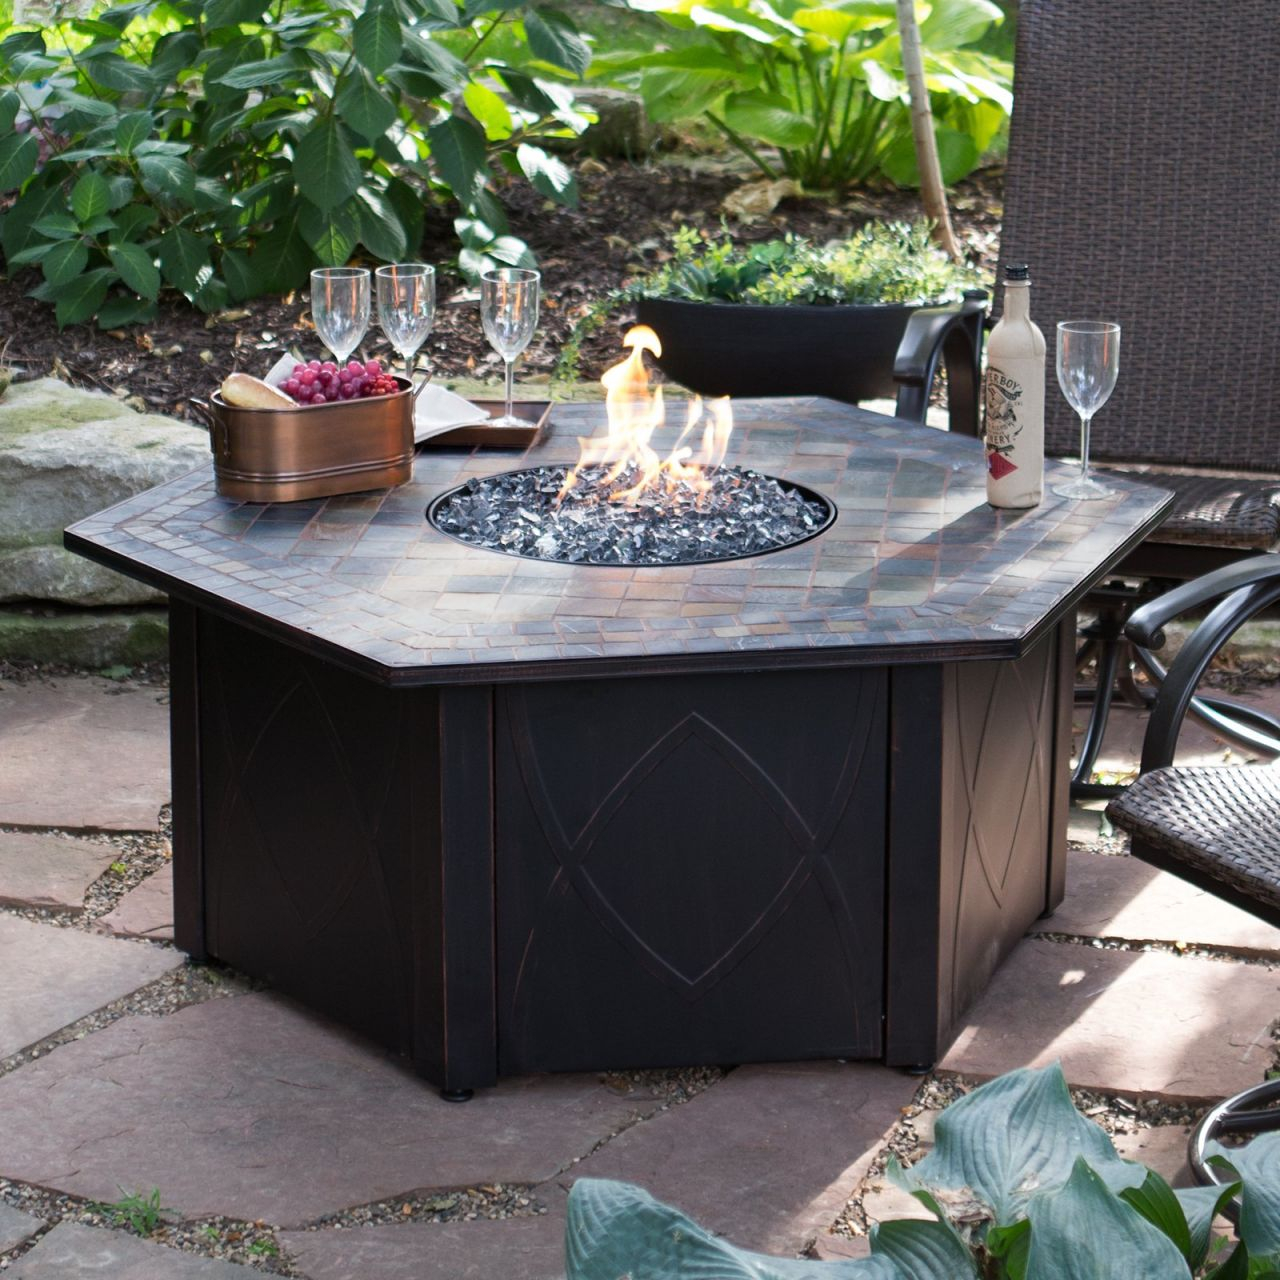 Gas Outdoor Fire Pit Also Add Fire Rings For  Also Add Round intended for Lovely Outdoor Propane Fire Pit